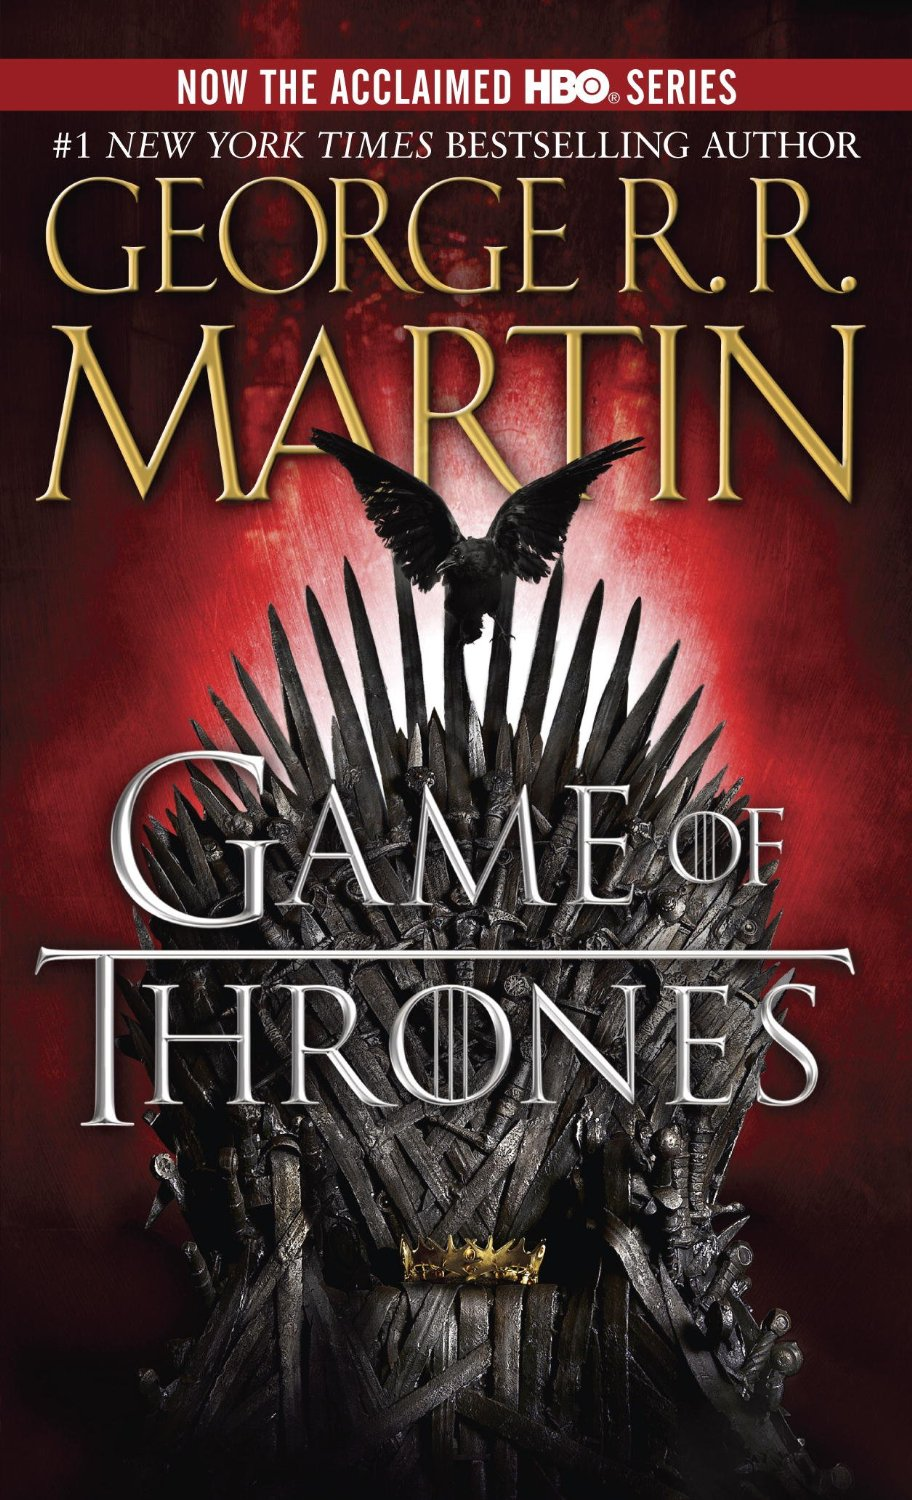 A Game of Thrones, by George R.R. Martin                               It's incredible to think that Martin published the first novel in A Song of Ice and Fire in 1996—it was so radical that we're still catching up to it. His vision was strange and dark, like Tolkien but splintered into dozens of points of view, with a thousand shades of moral ambiguity, but at the same time utterly familiar. Westeros is a fantasy otherworld, a world of magic and violence, but at the same time we recognize the disaster of our own reality in it.